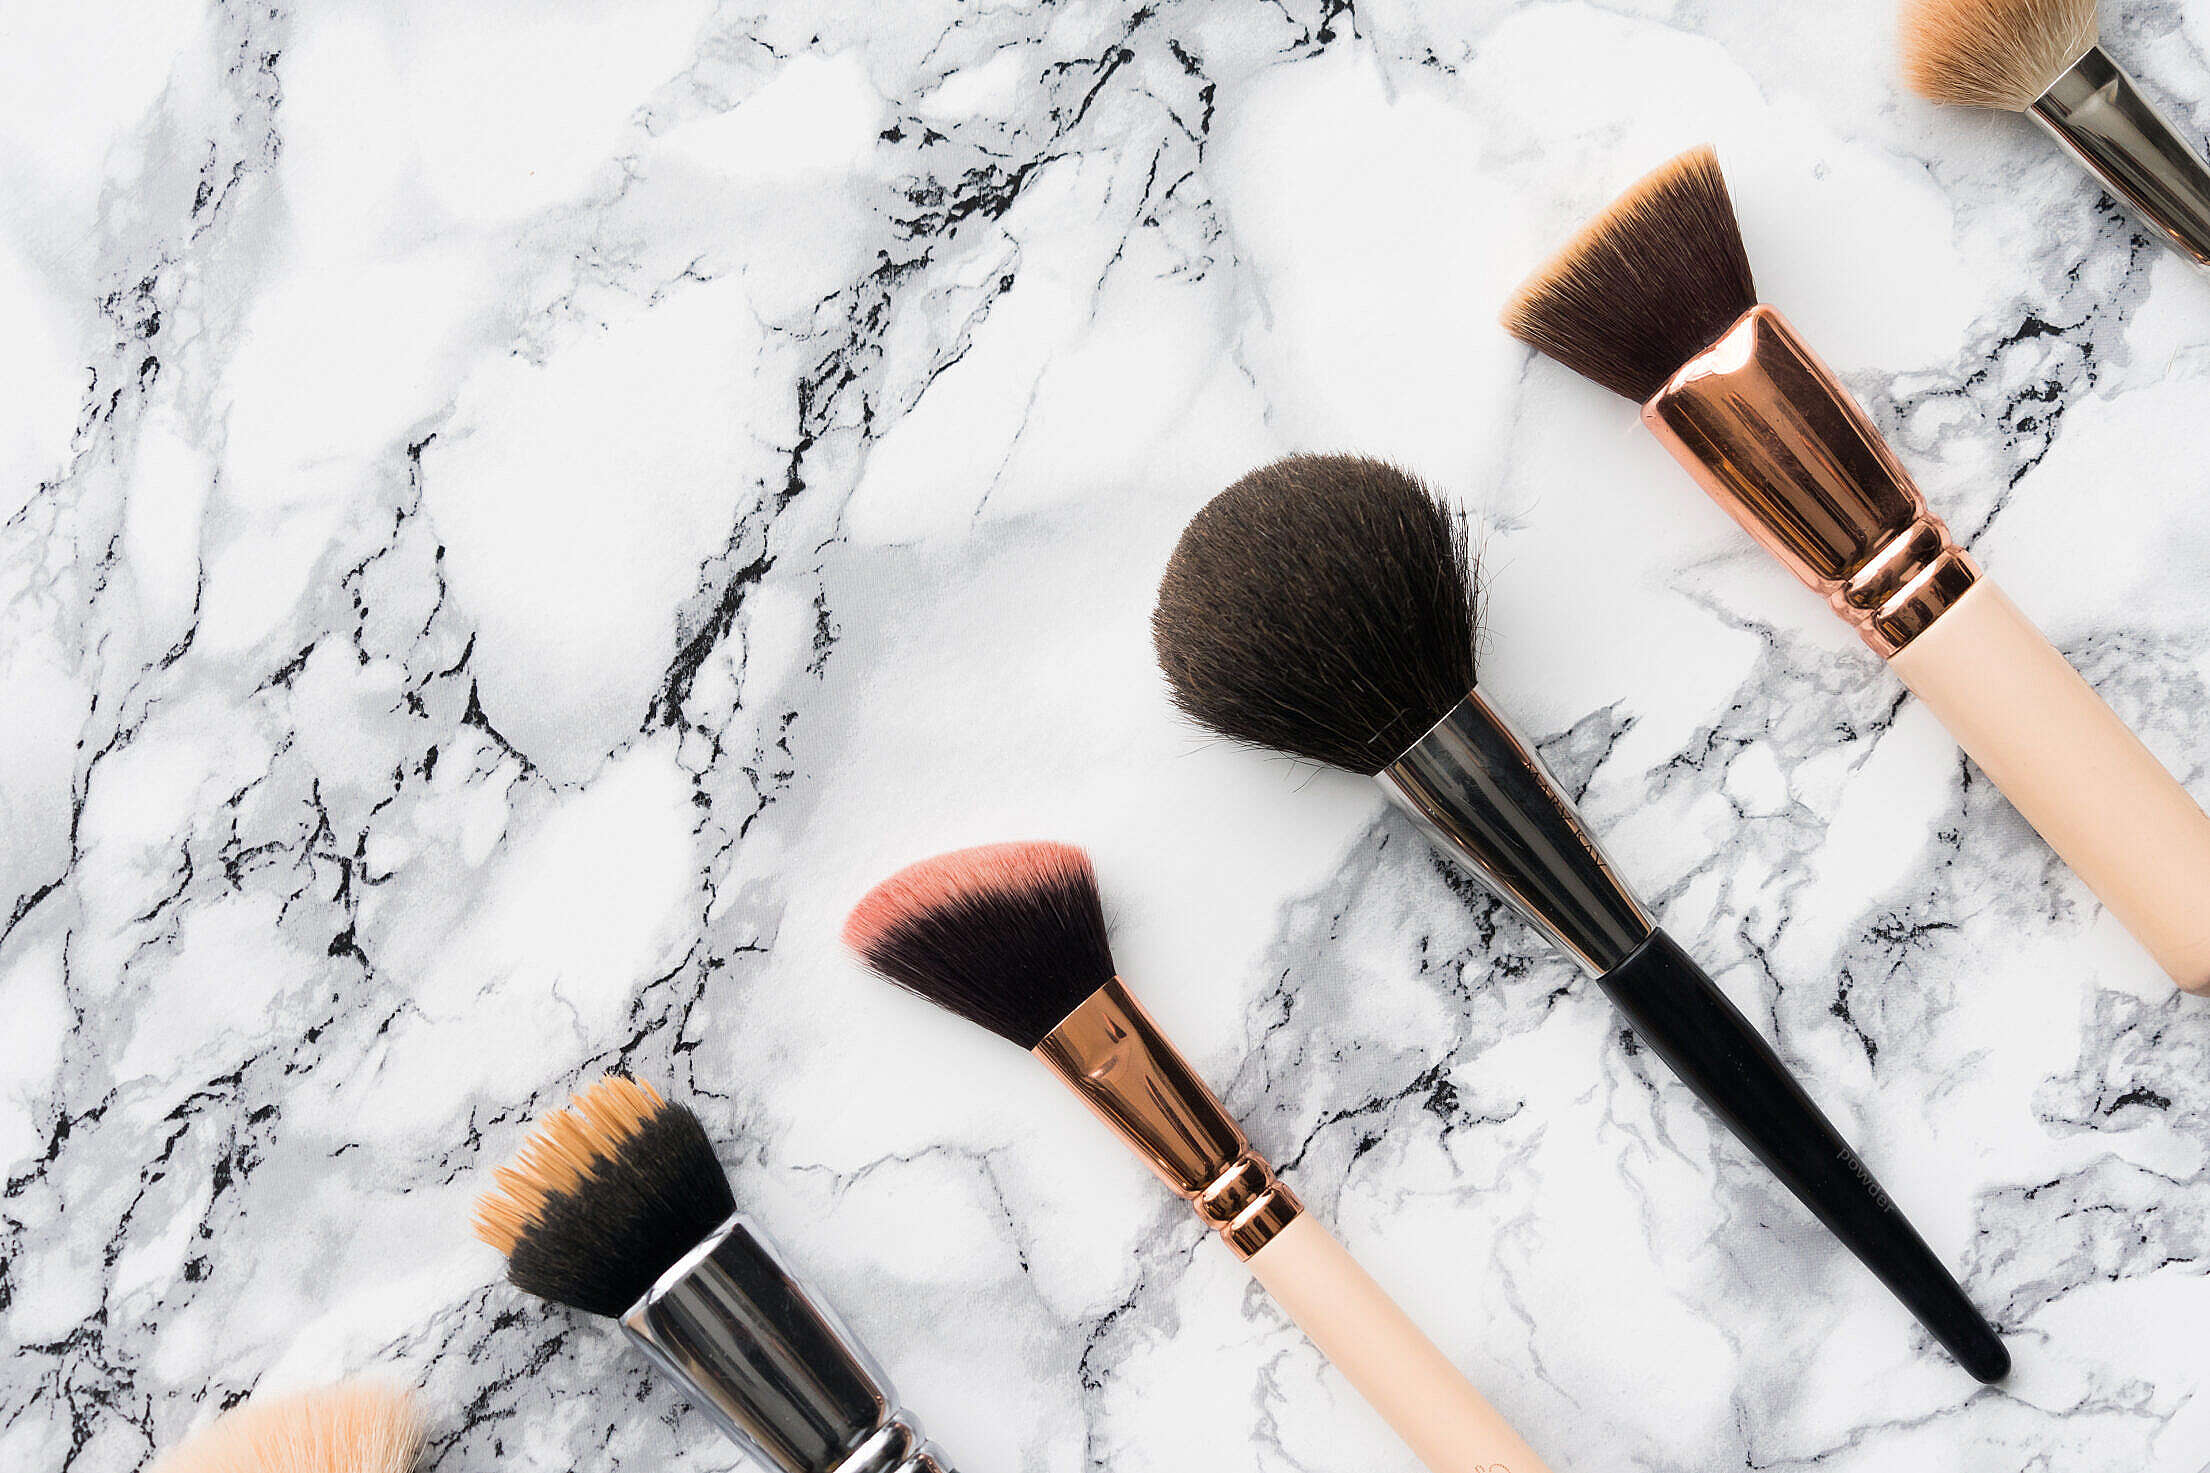 Makeup Brushes with Place for Text Free Stock Photo